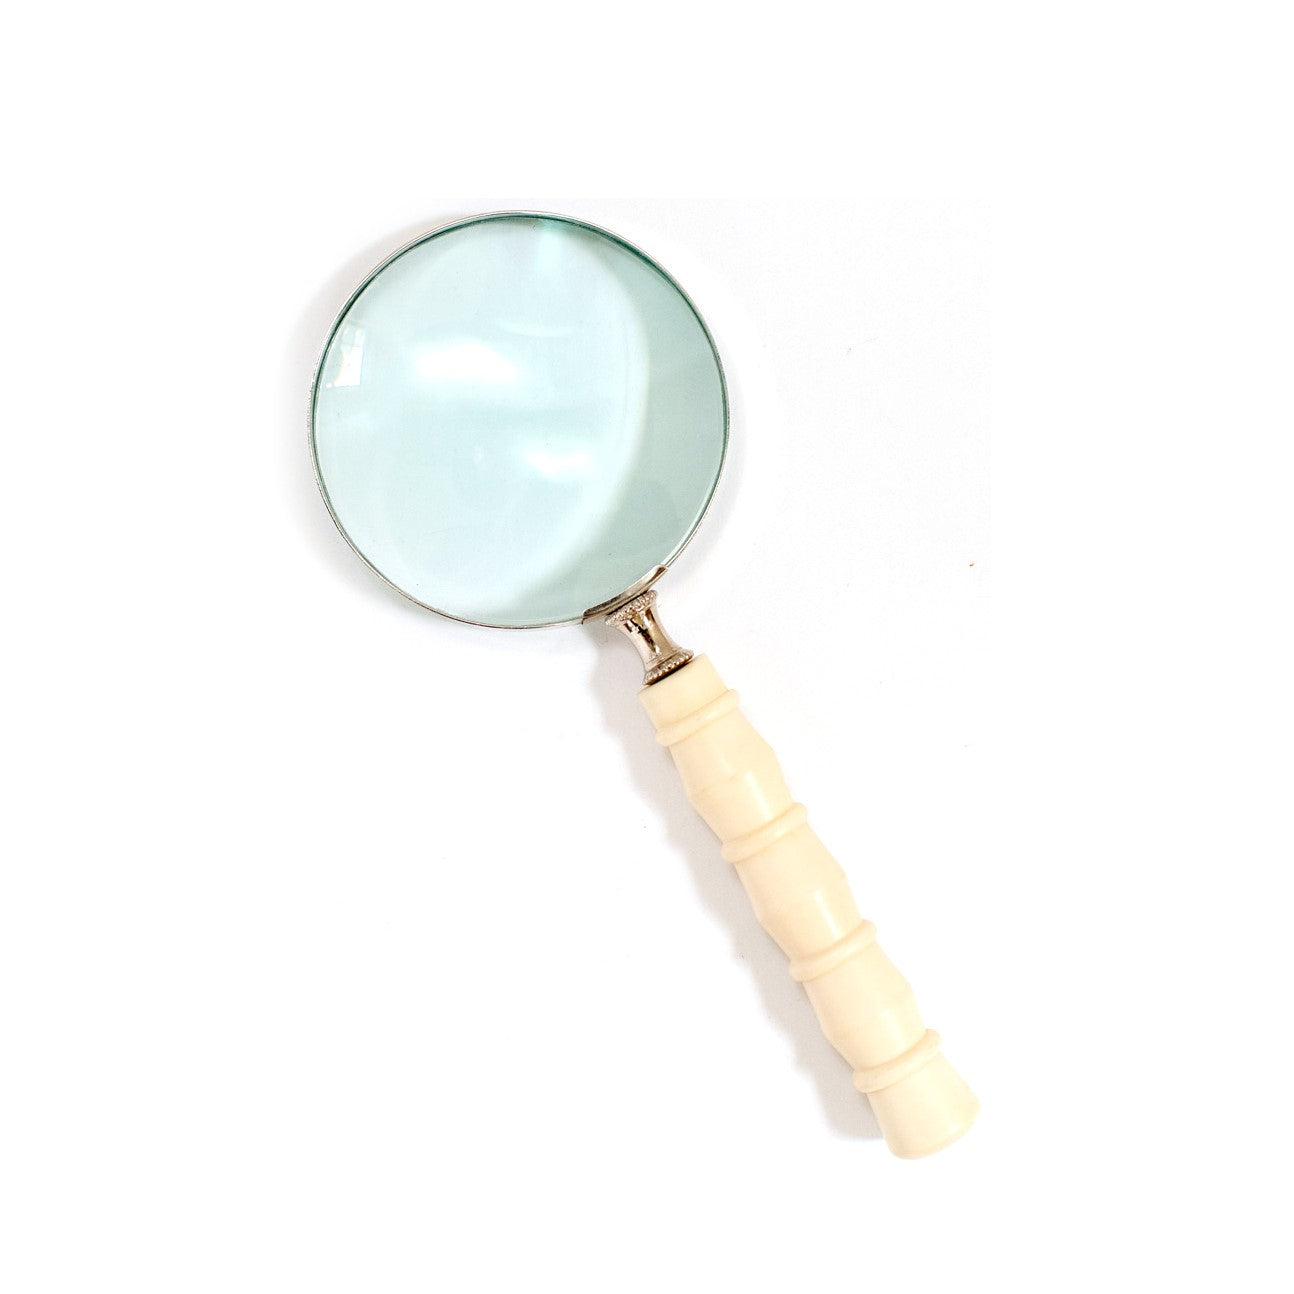 Magnifying Glass with Bone Handle - Pacific Design Co.